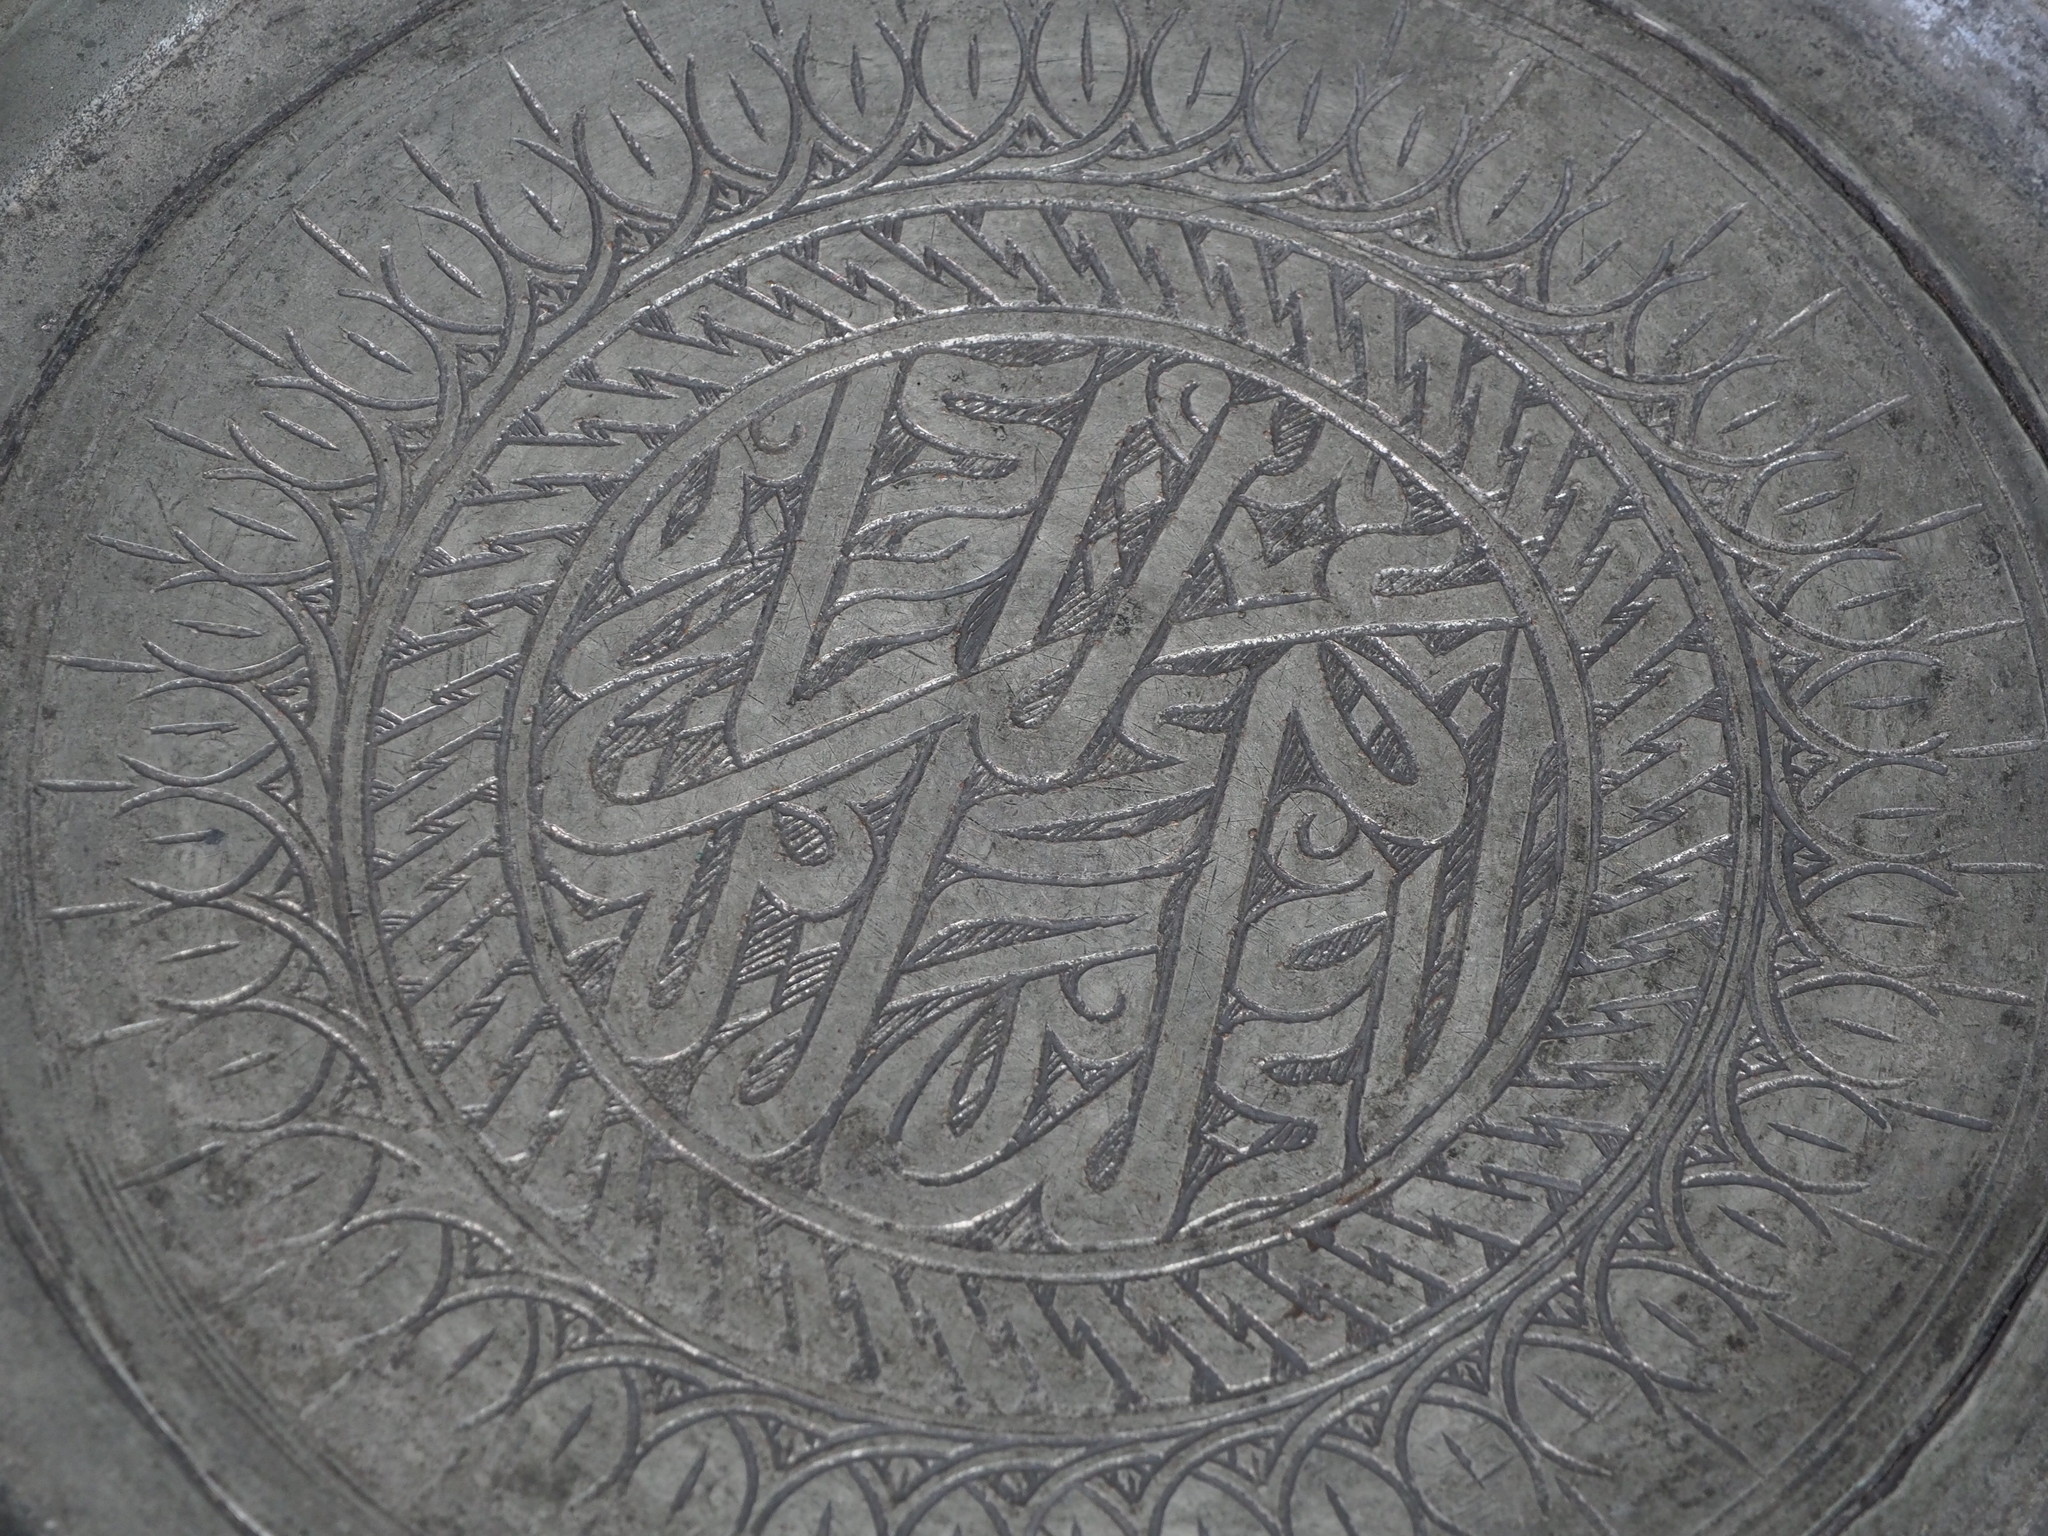 38 cm Antique ottoman orient Islamic Hammer Engraved copper Tray Plate from Afghanistan K27